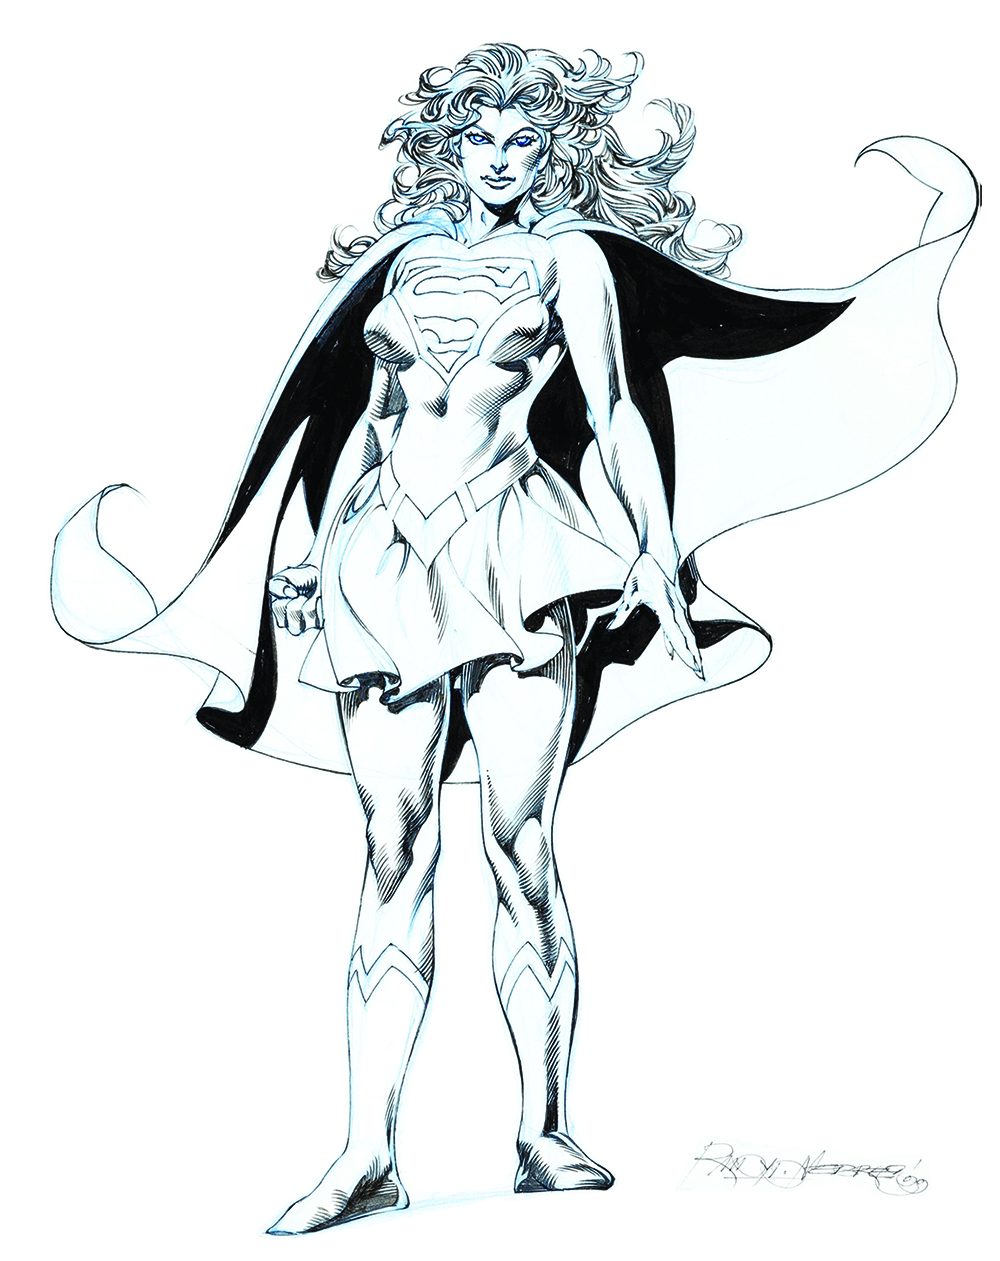 Image: Supergirl Specialty Art by Rudy Nebres